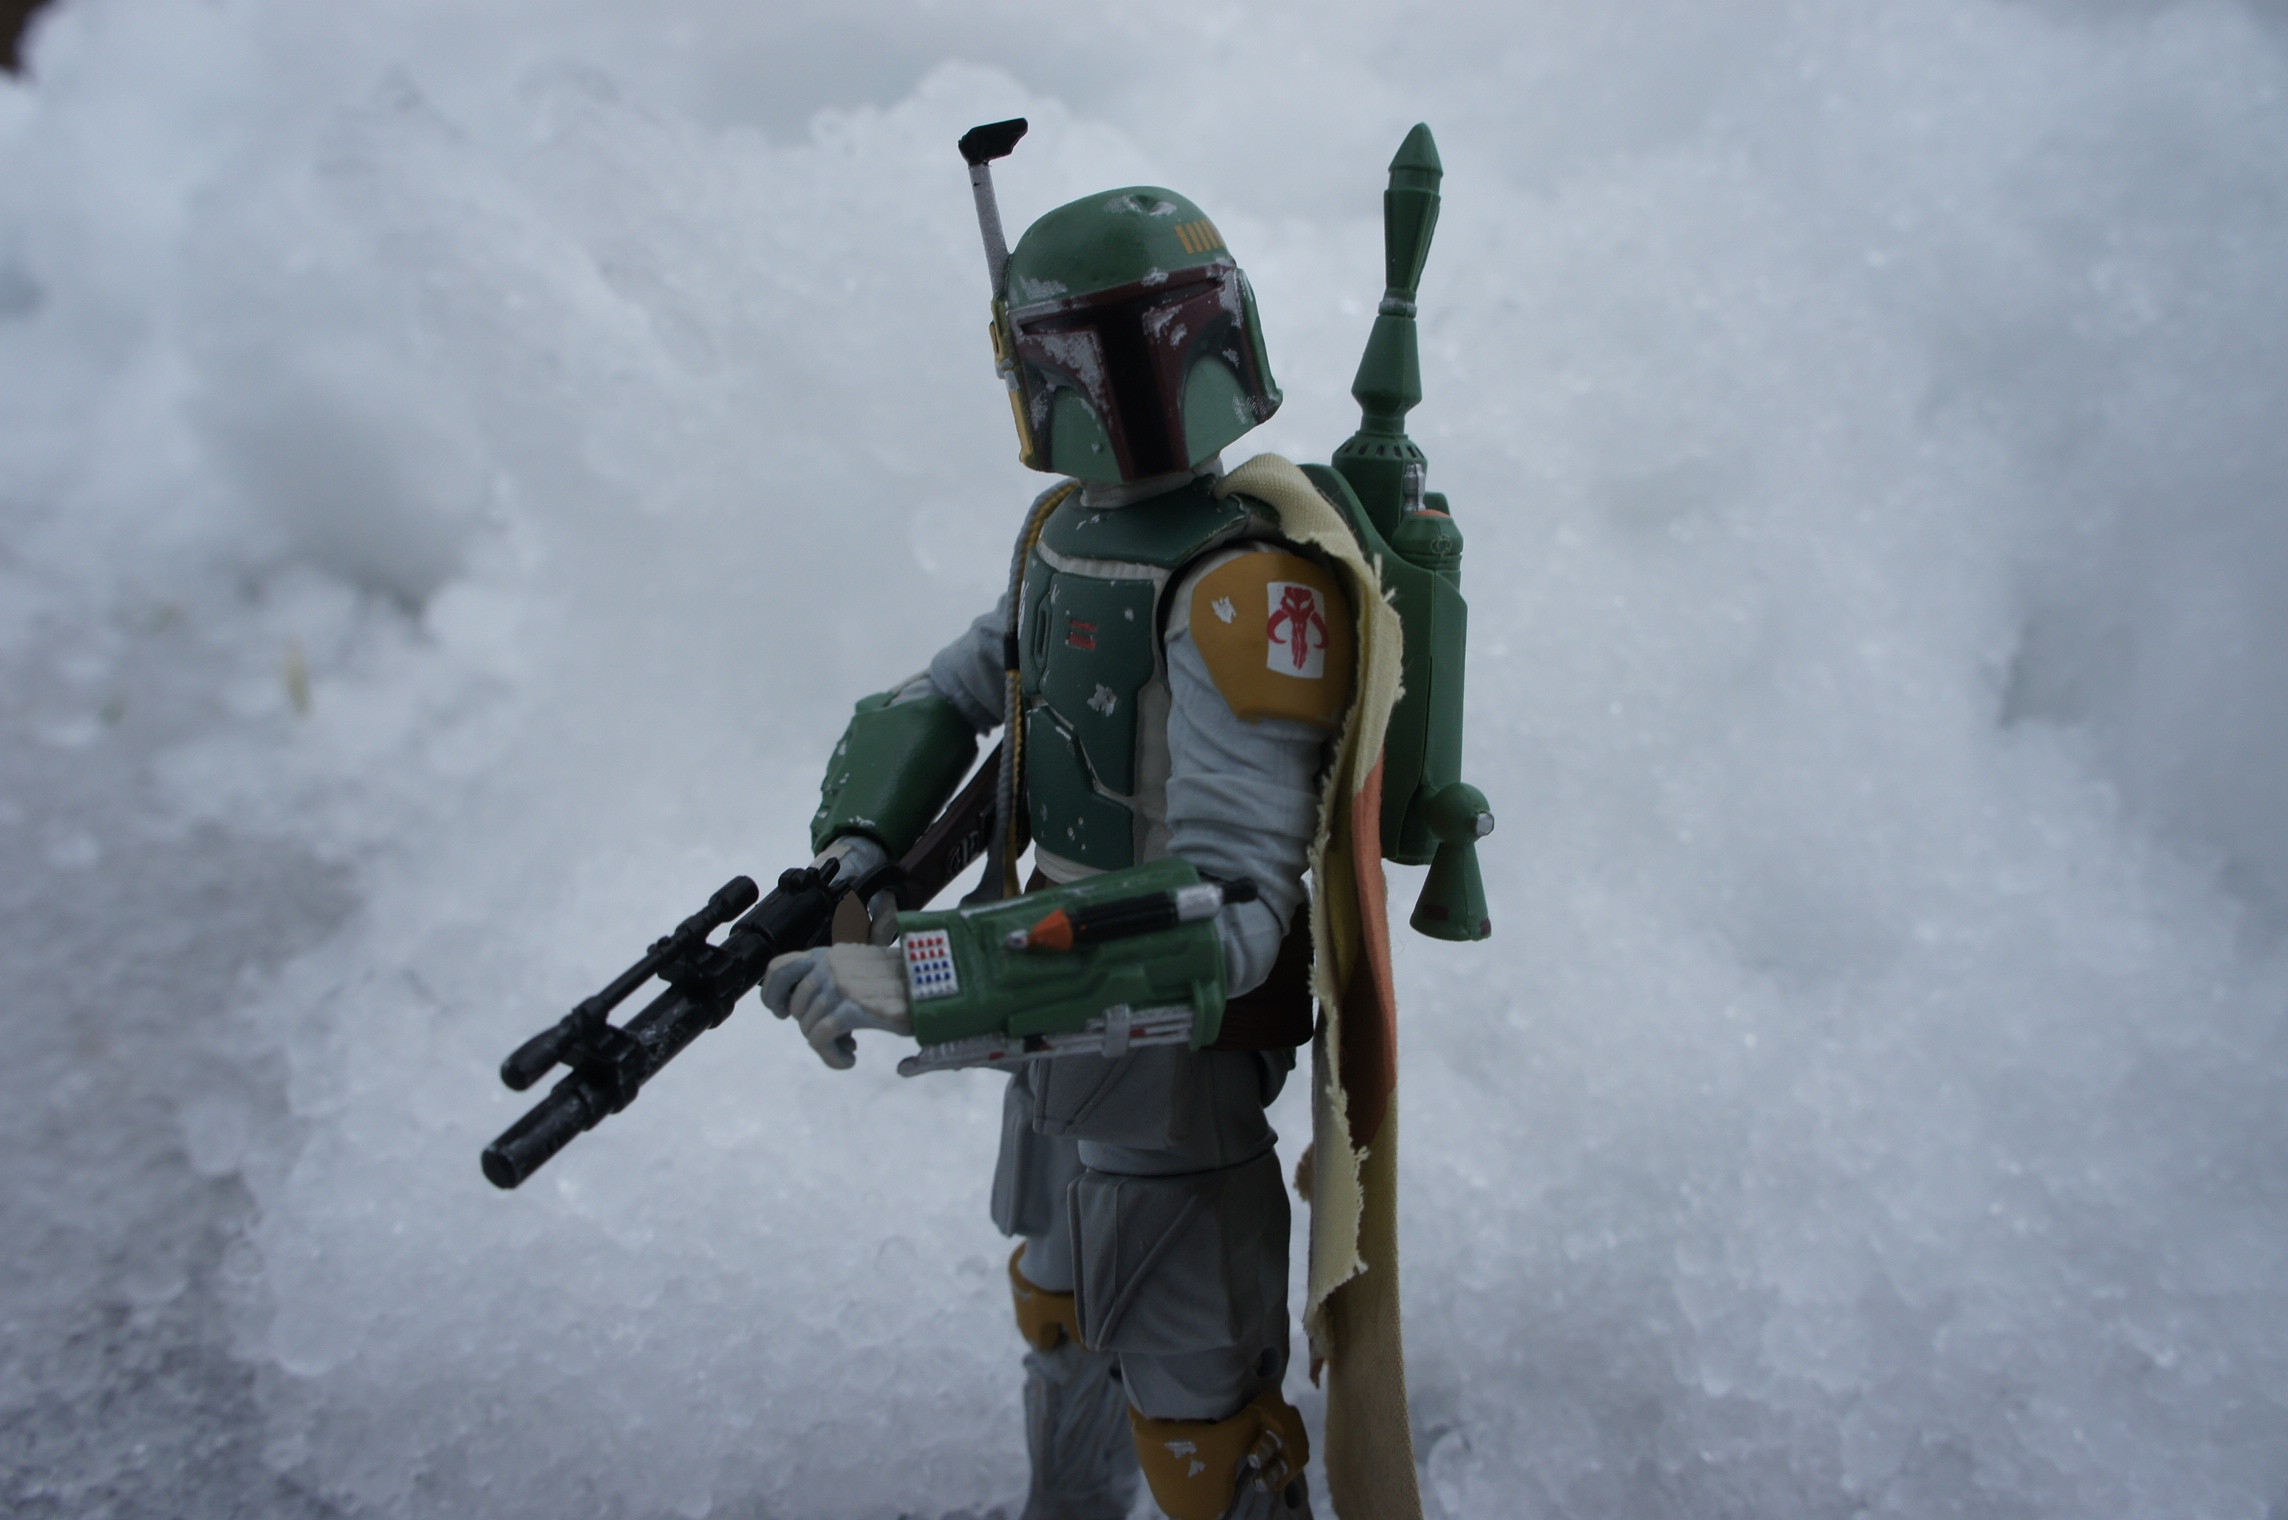 I call this… Fett in thesnow